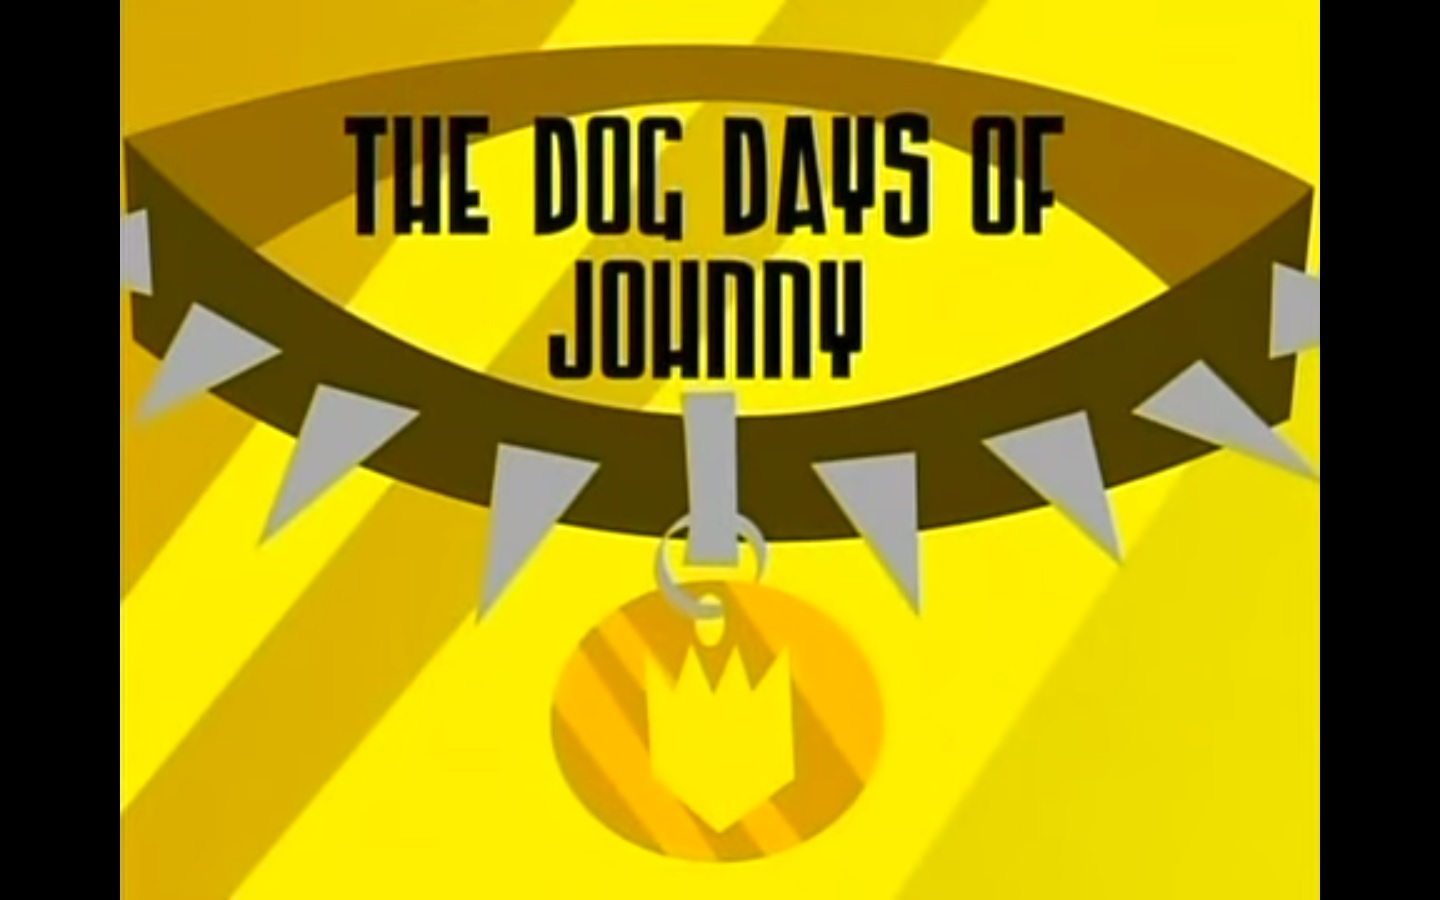 The Dog Days of Johnny